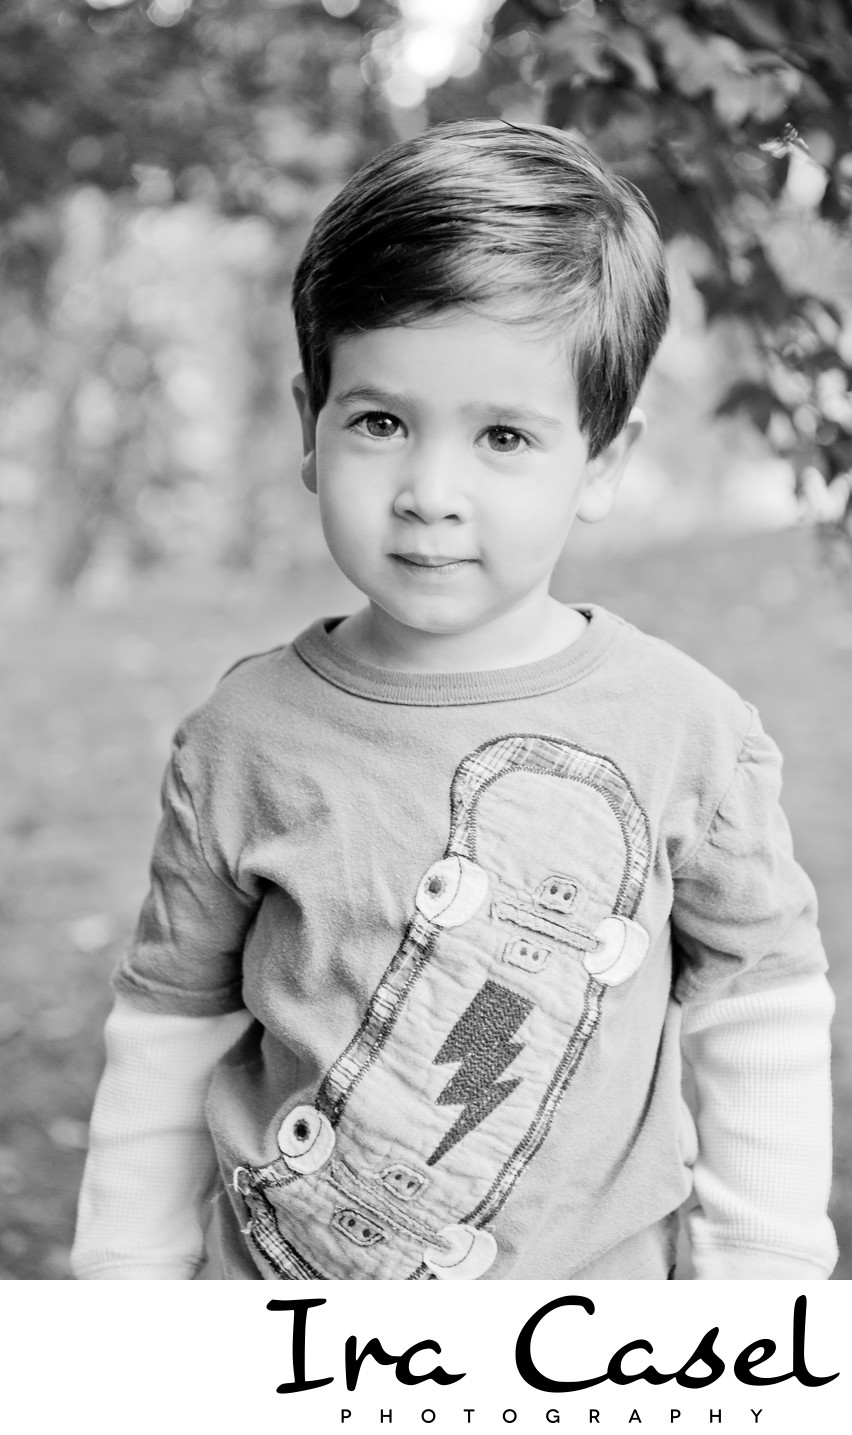 Maplewood Children's Portrait Photographer